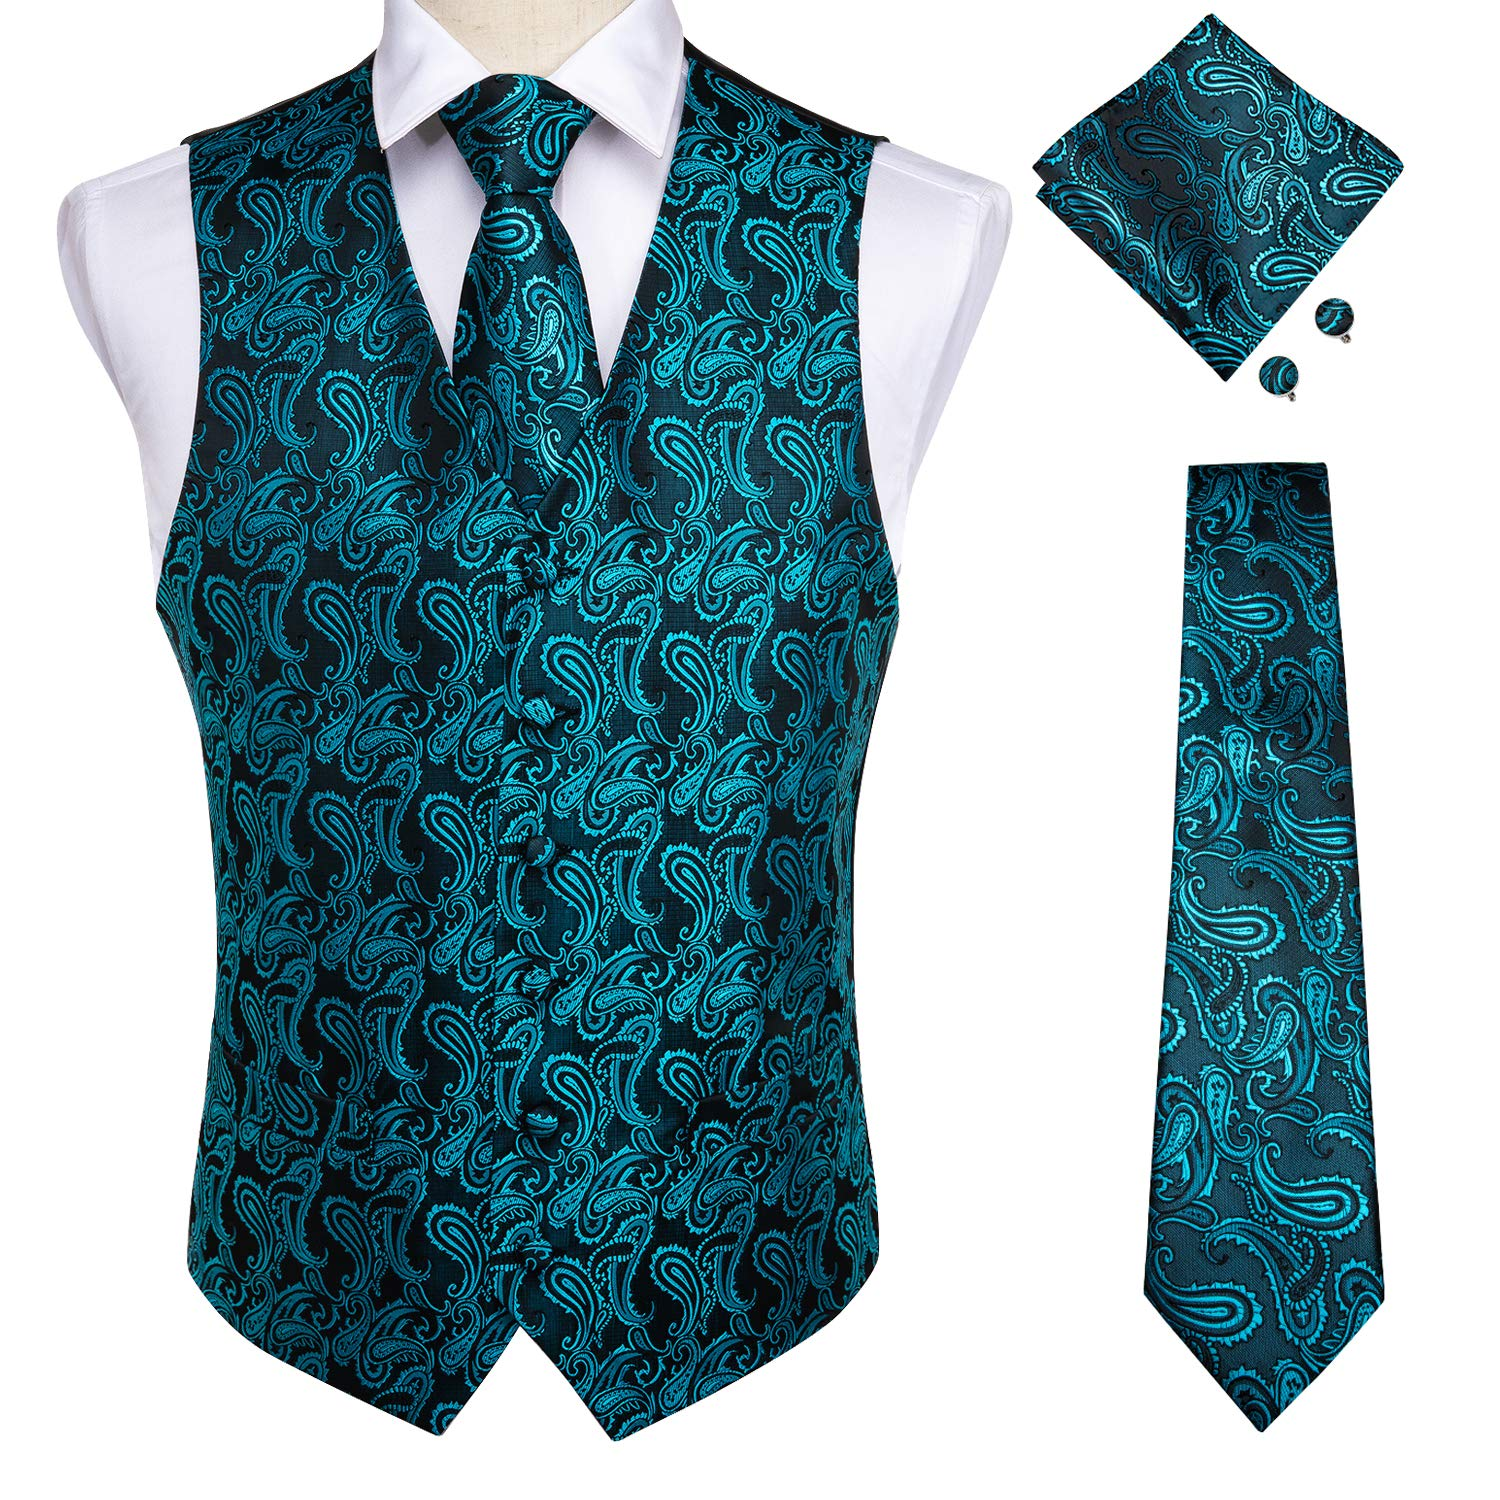 DiBanGu Men's Paisley Waistcoat and Necktie Pocket Square Cufflink Teal Vest Suit Set by DiBanGu